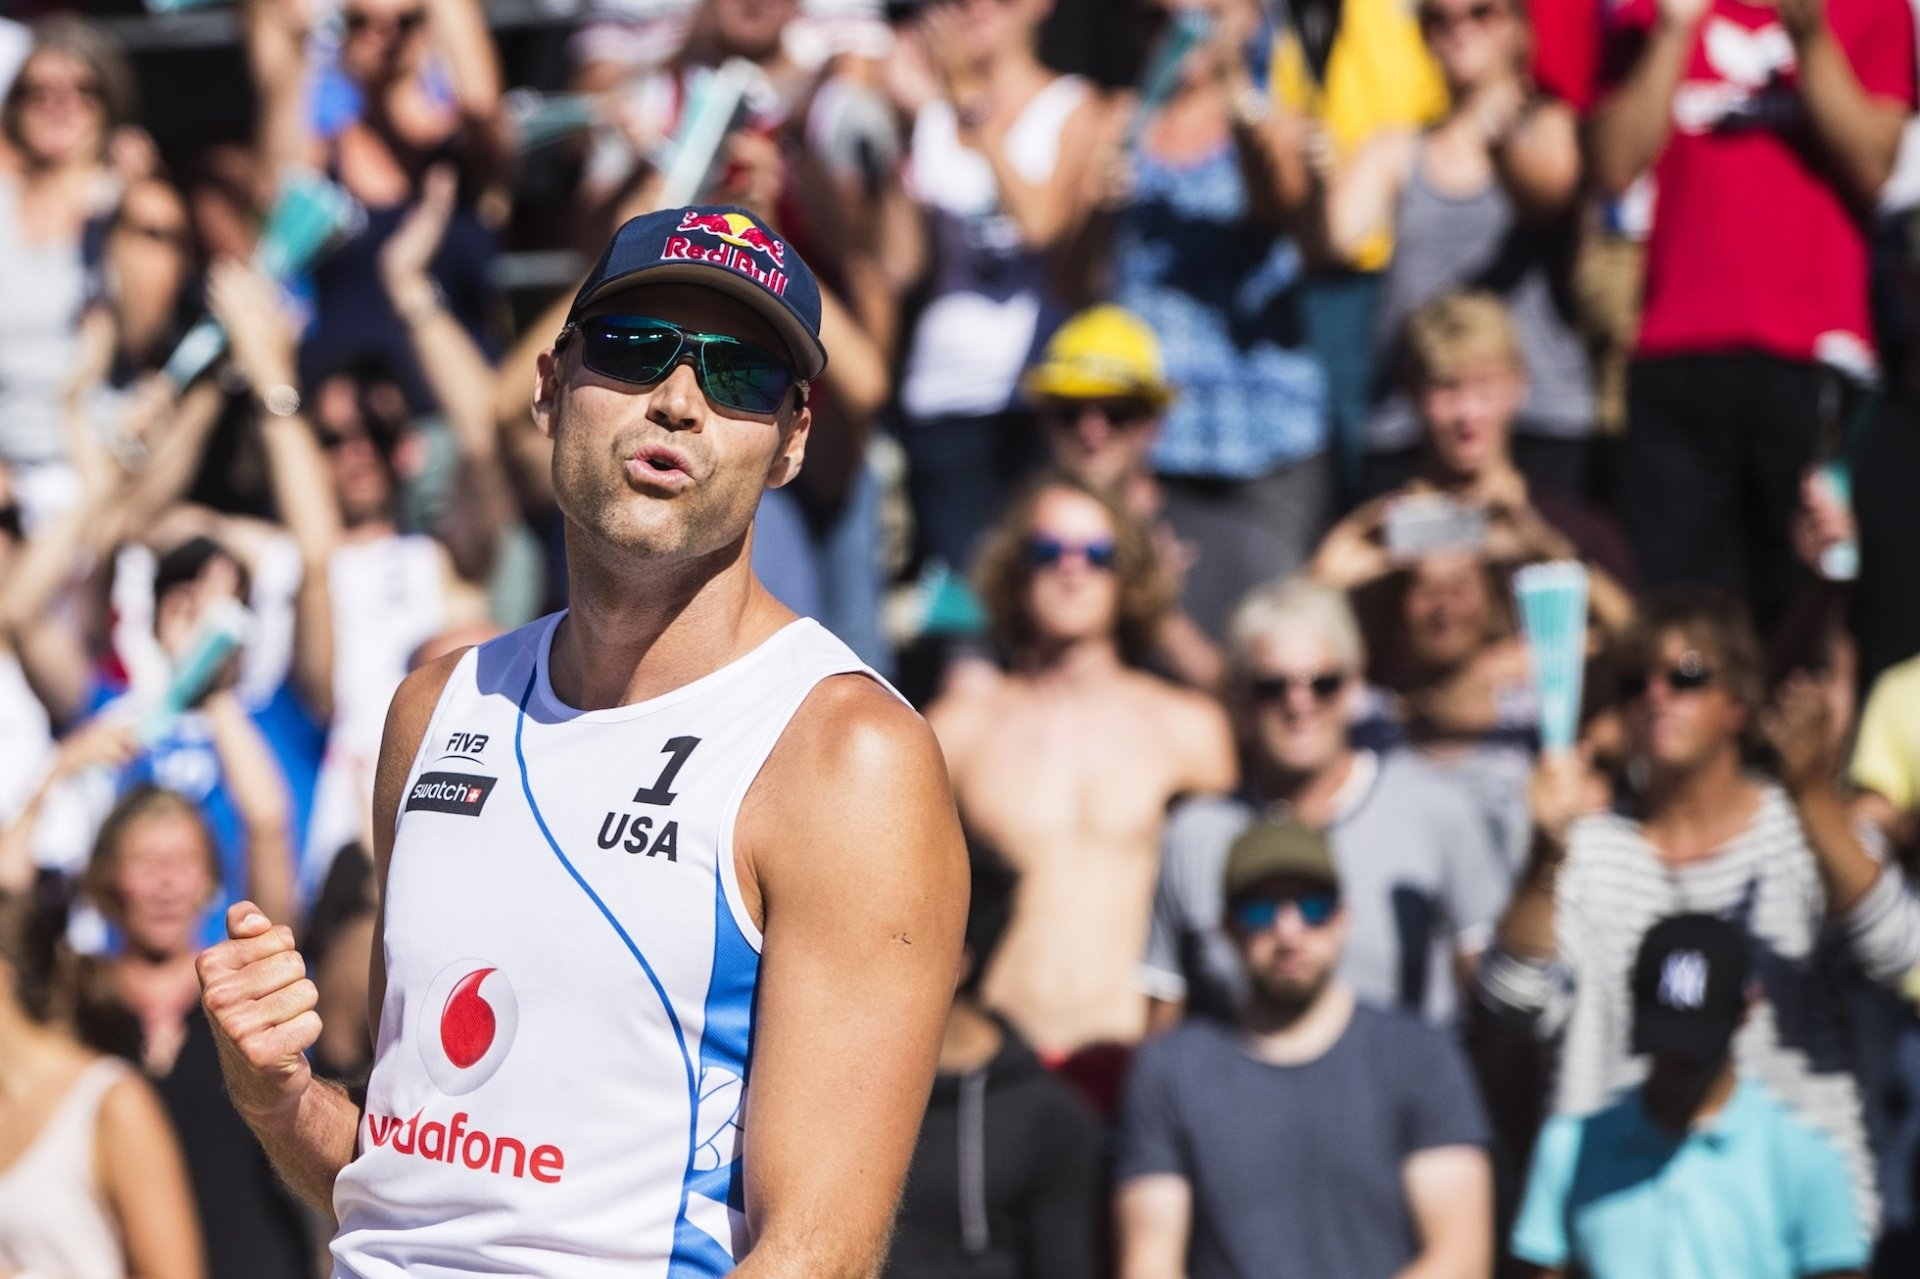 Phil Dalhausser is 38, loves chocolate and remains one of beach volleyball's most feared players